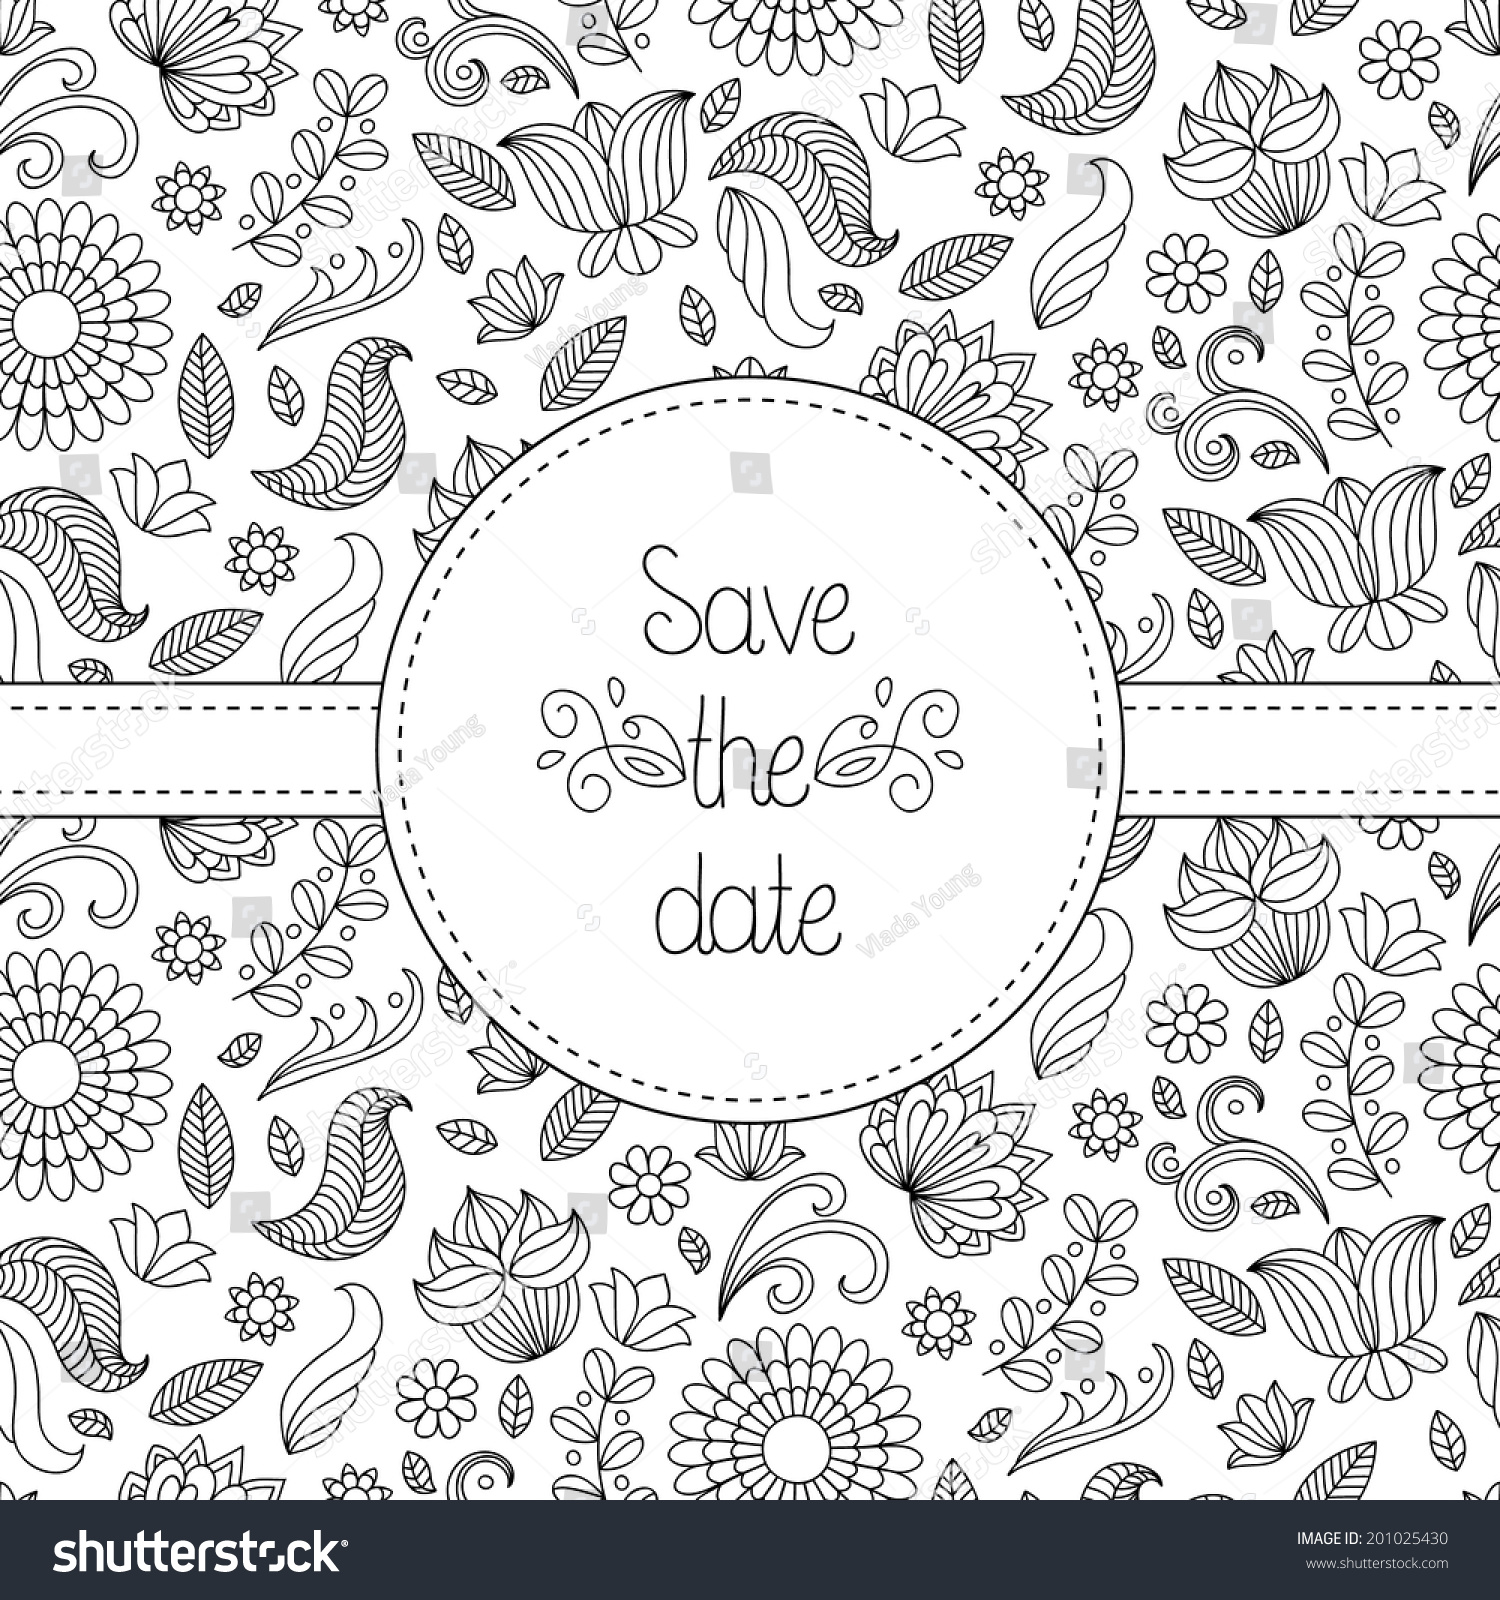 Black white vector wedding invitation card stock vector 201025430 black and white vector wedding invitation card in floral frame and text save the date stopboris Image collections